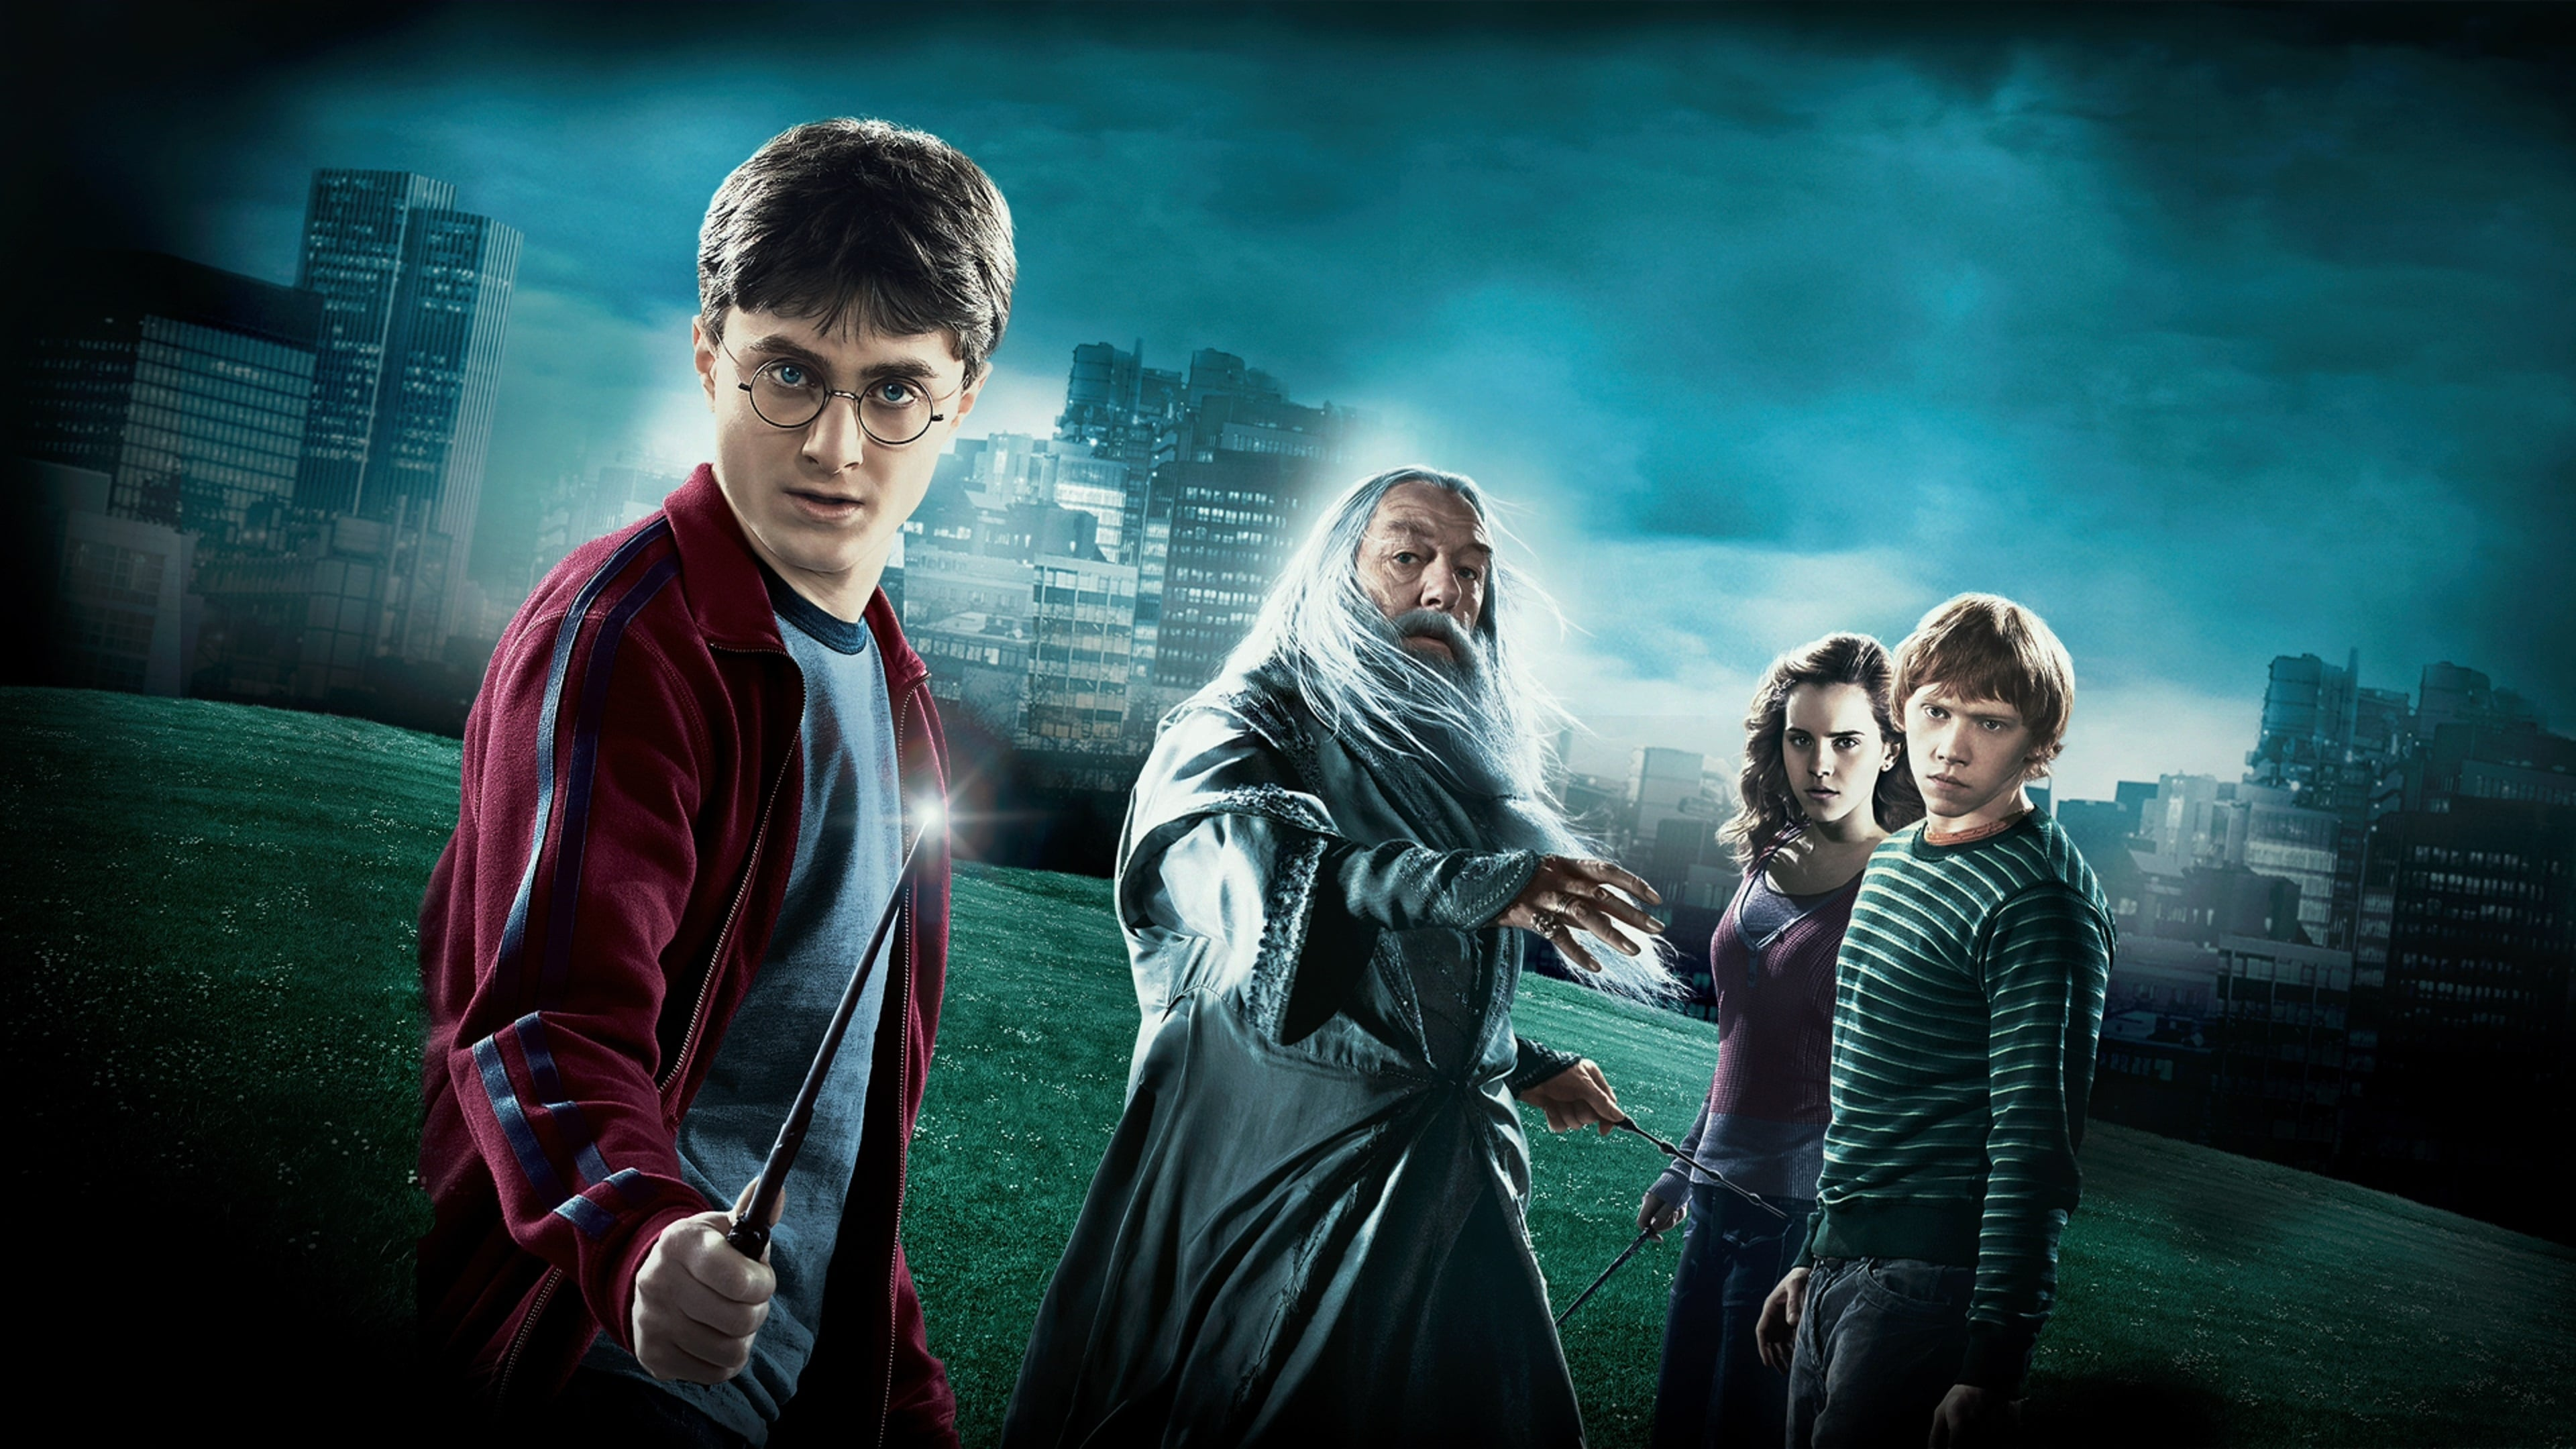 Harry Potter 6 Streaming